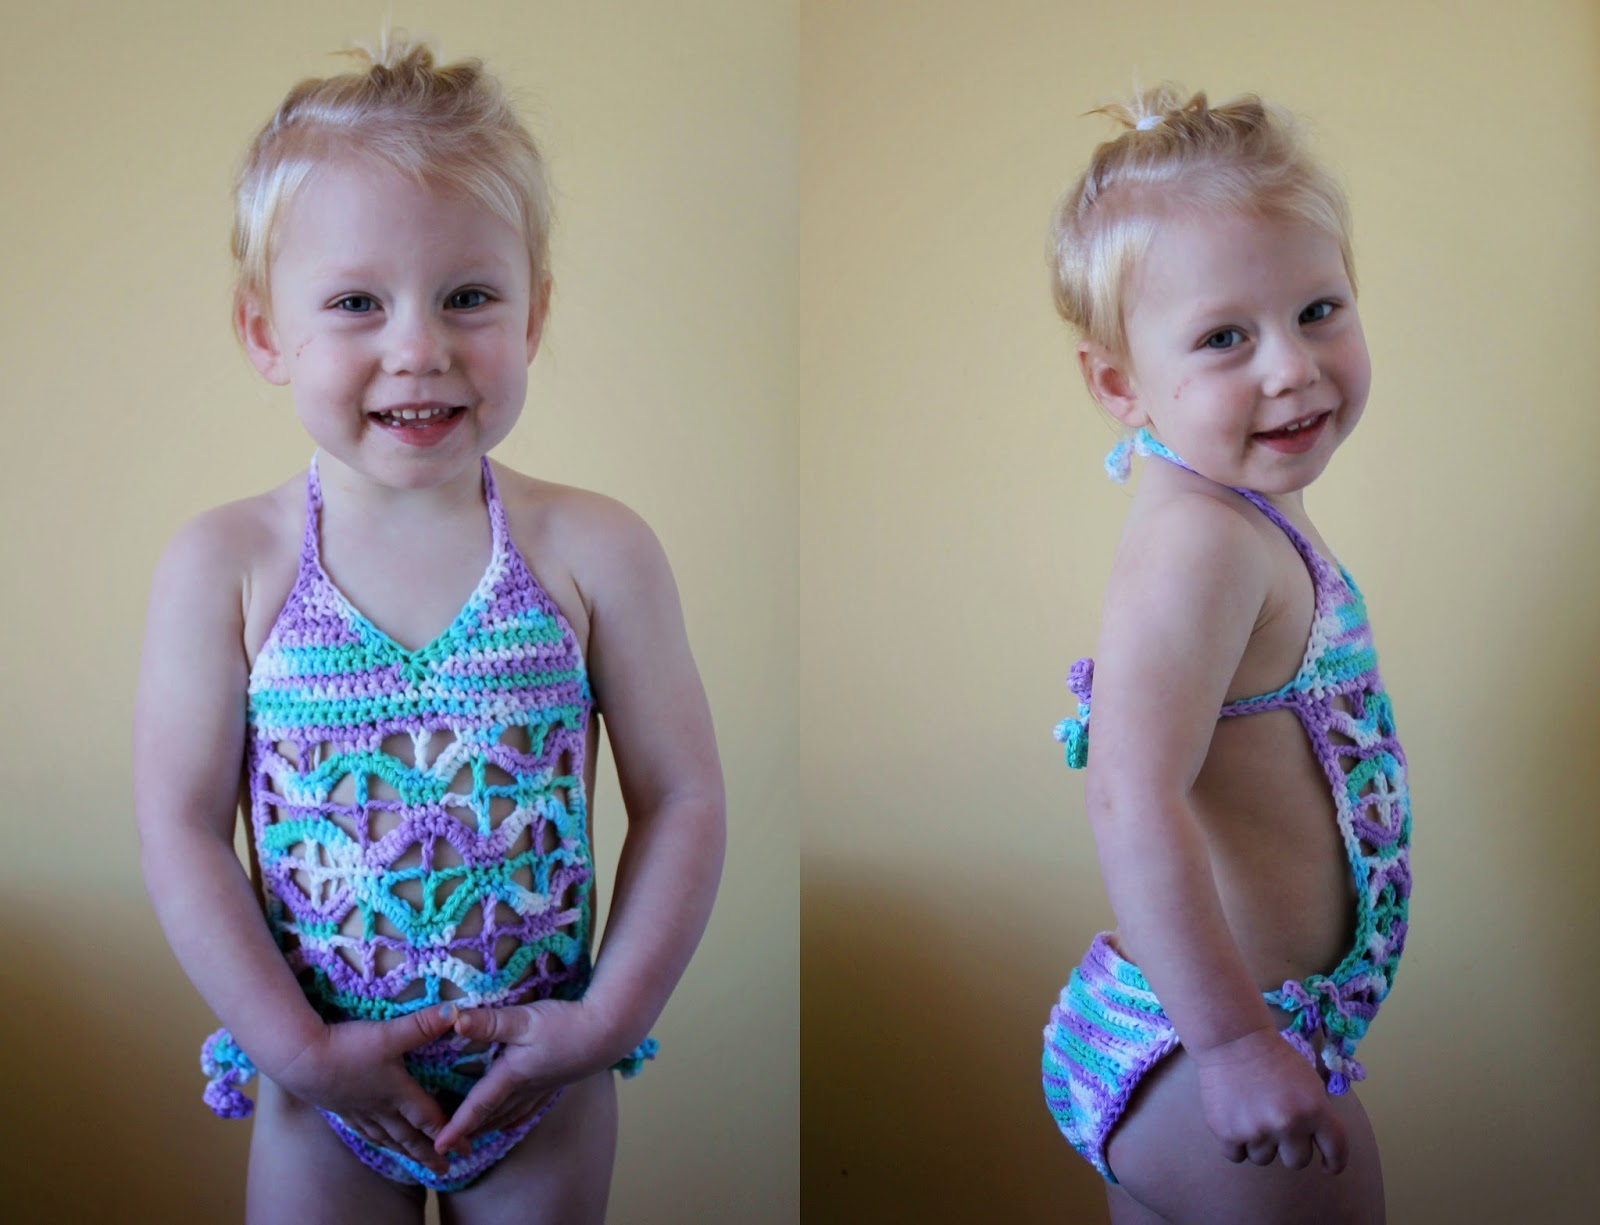 Crochet One Piece Bathing Suit : Crochet a bit of cozy: Swimsuit!